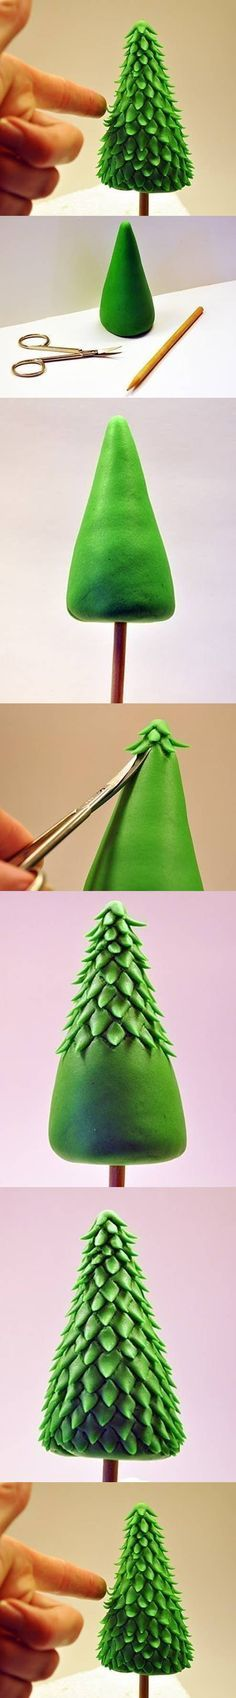 DIY Clay Christmas Tree Internet Tutorial